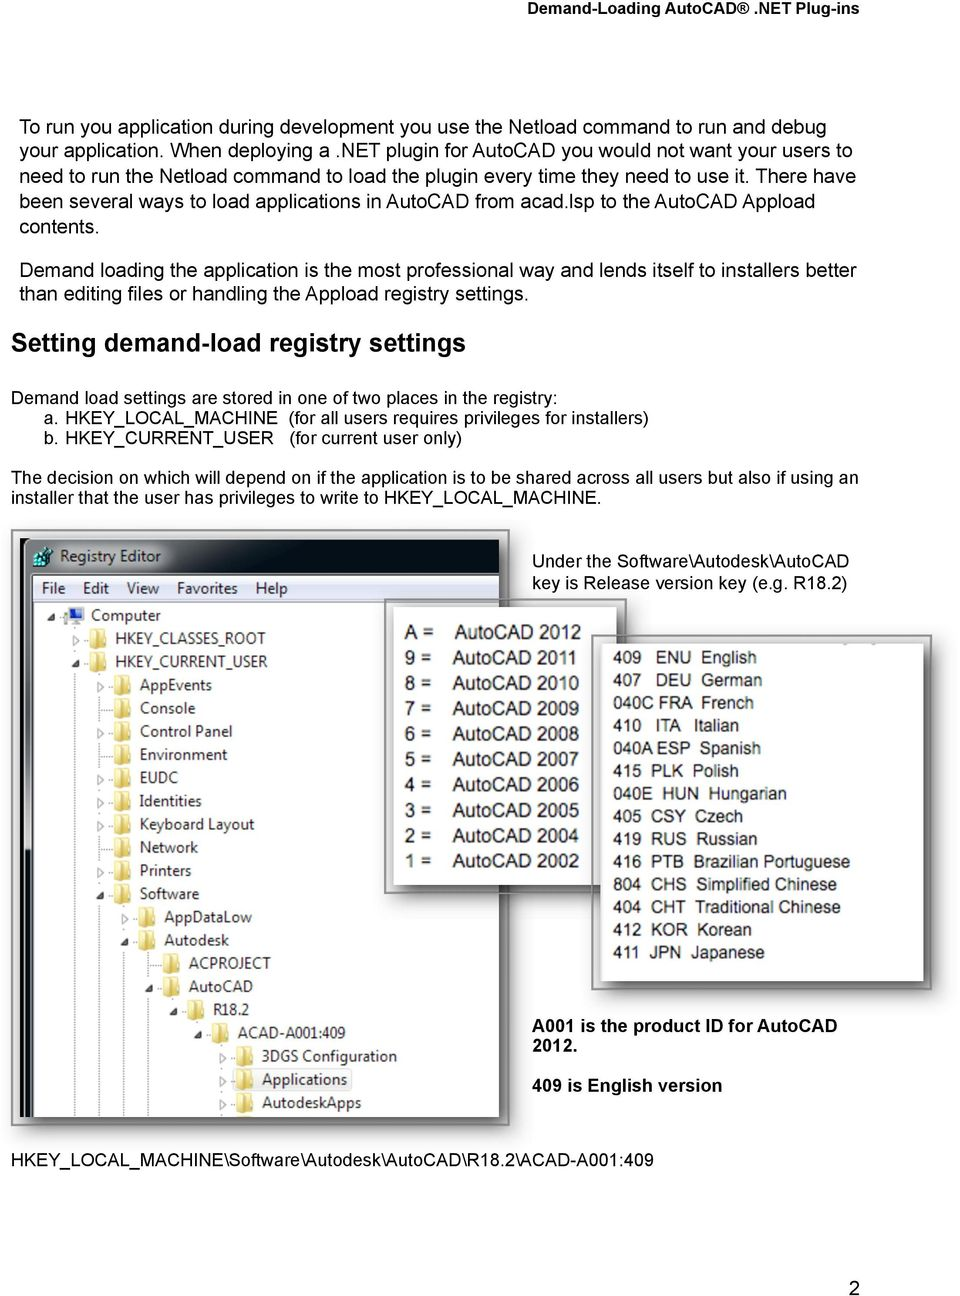 Demand-Loading AutoCAD NET Plug-ins - PDF